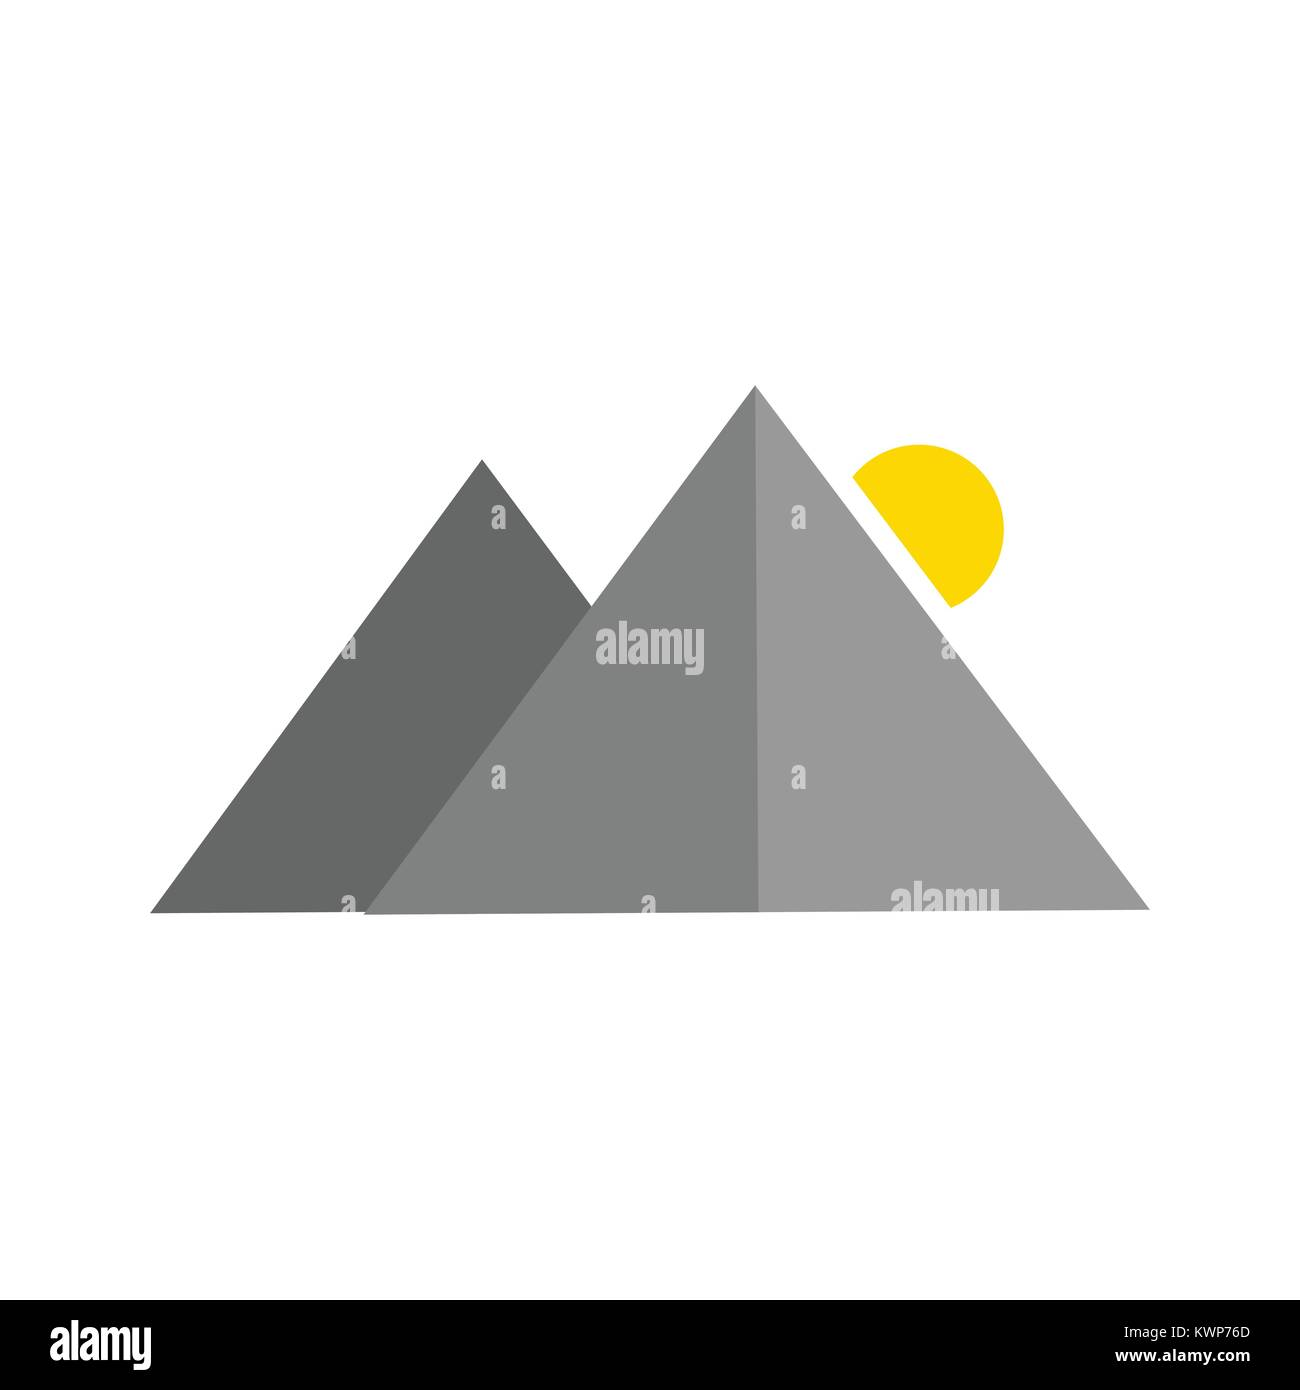 Simple Abstract Mountain Shape Vector Illustration Graphic Design - Stock Image